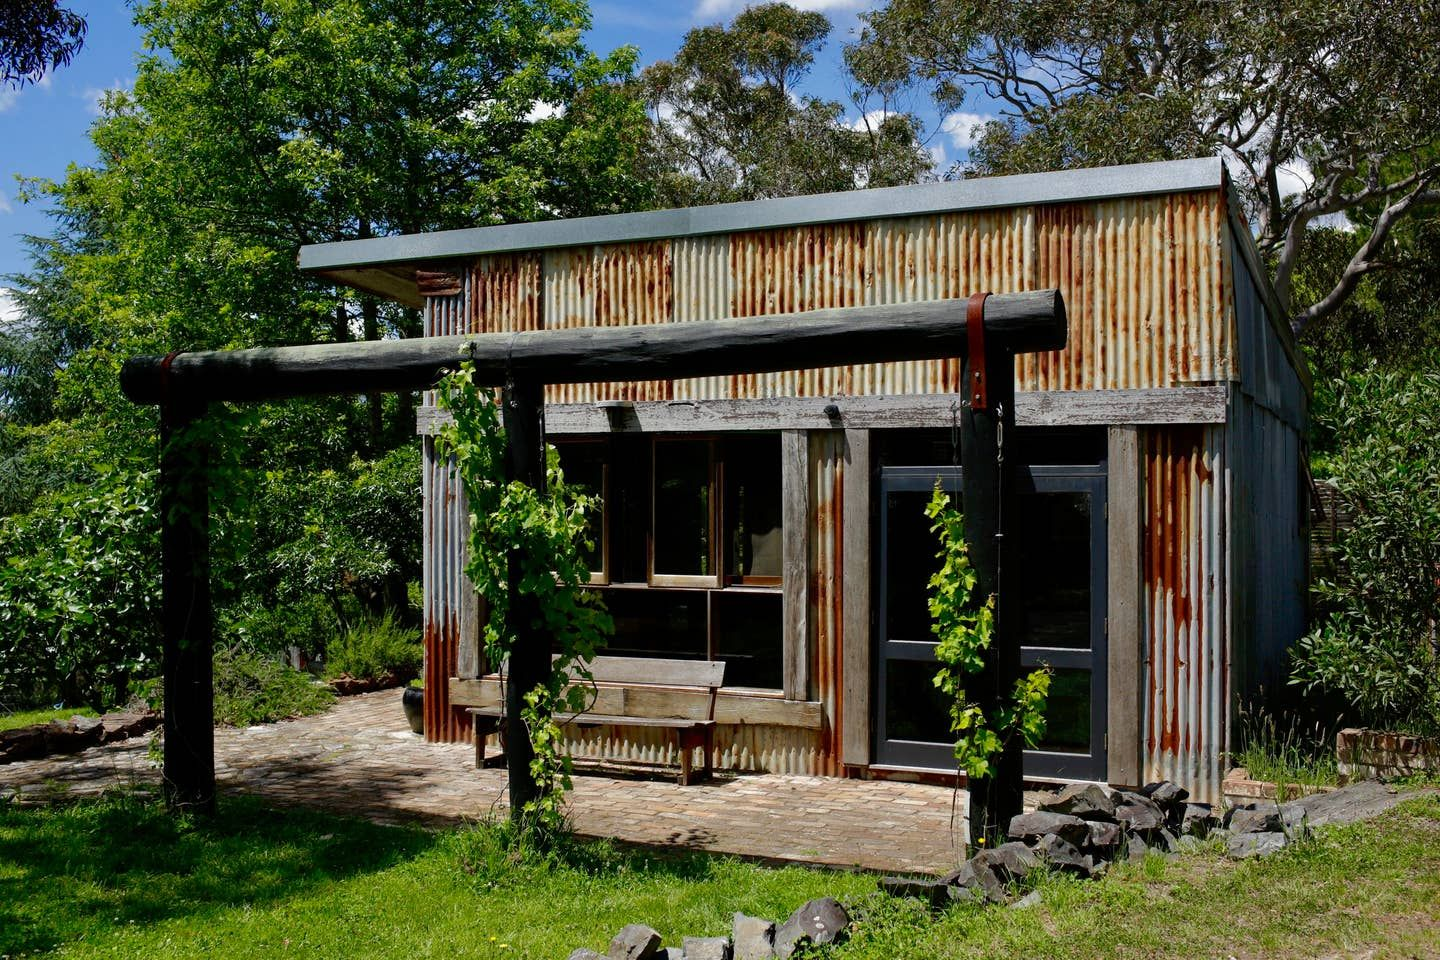 living in a shed made from recycled material